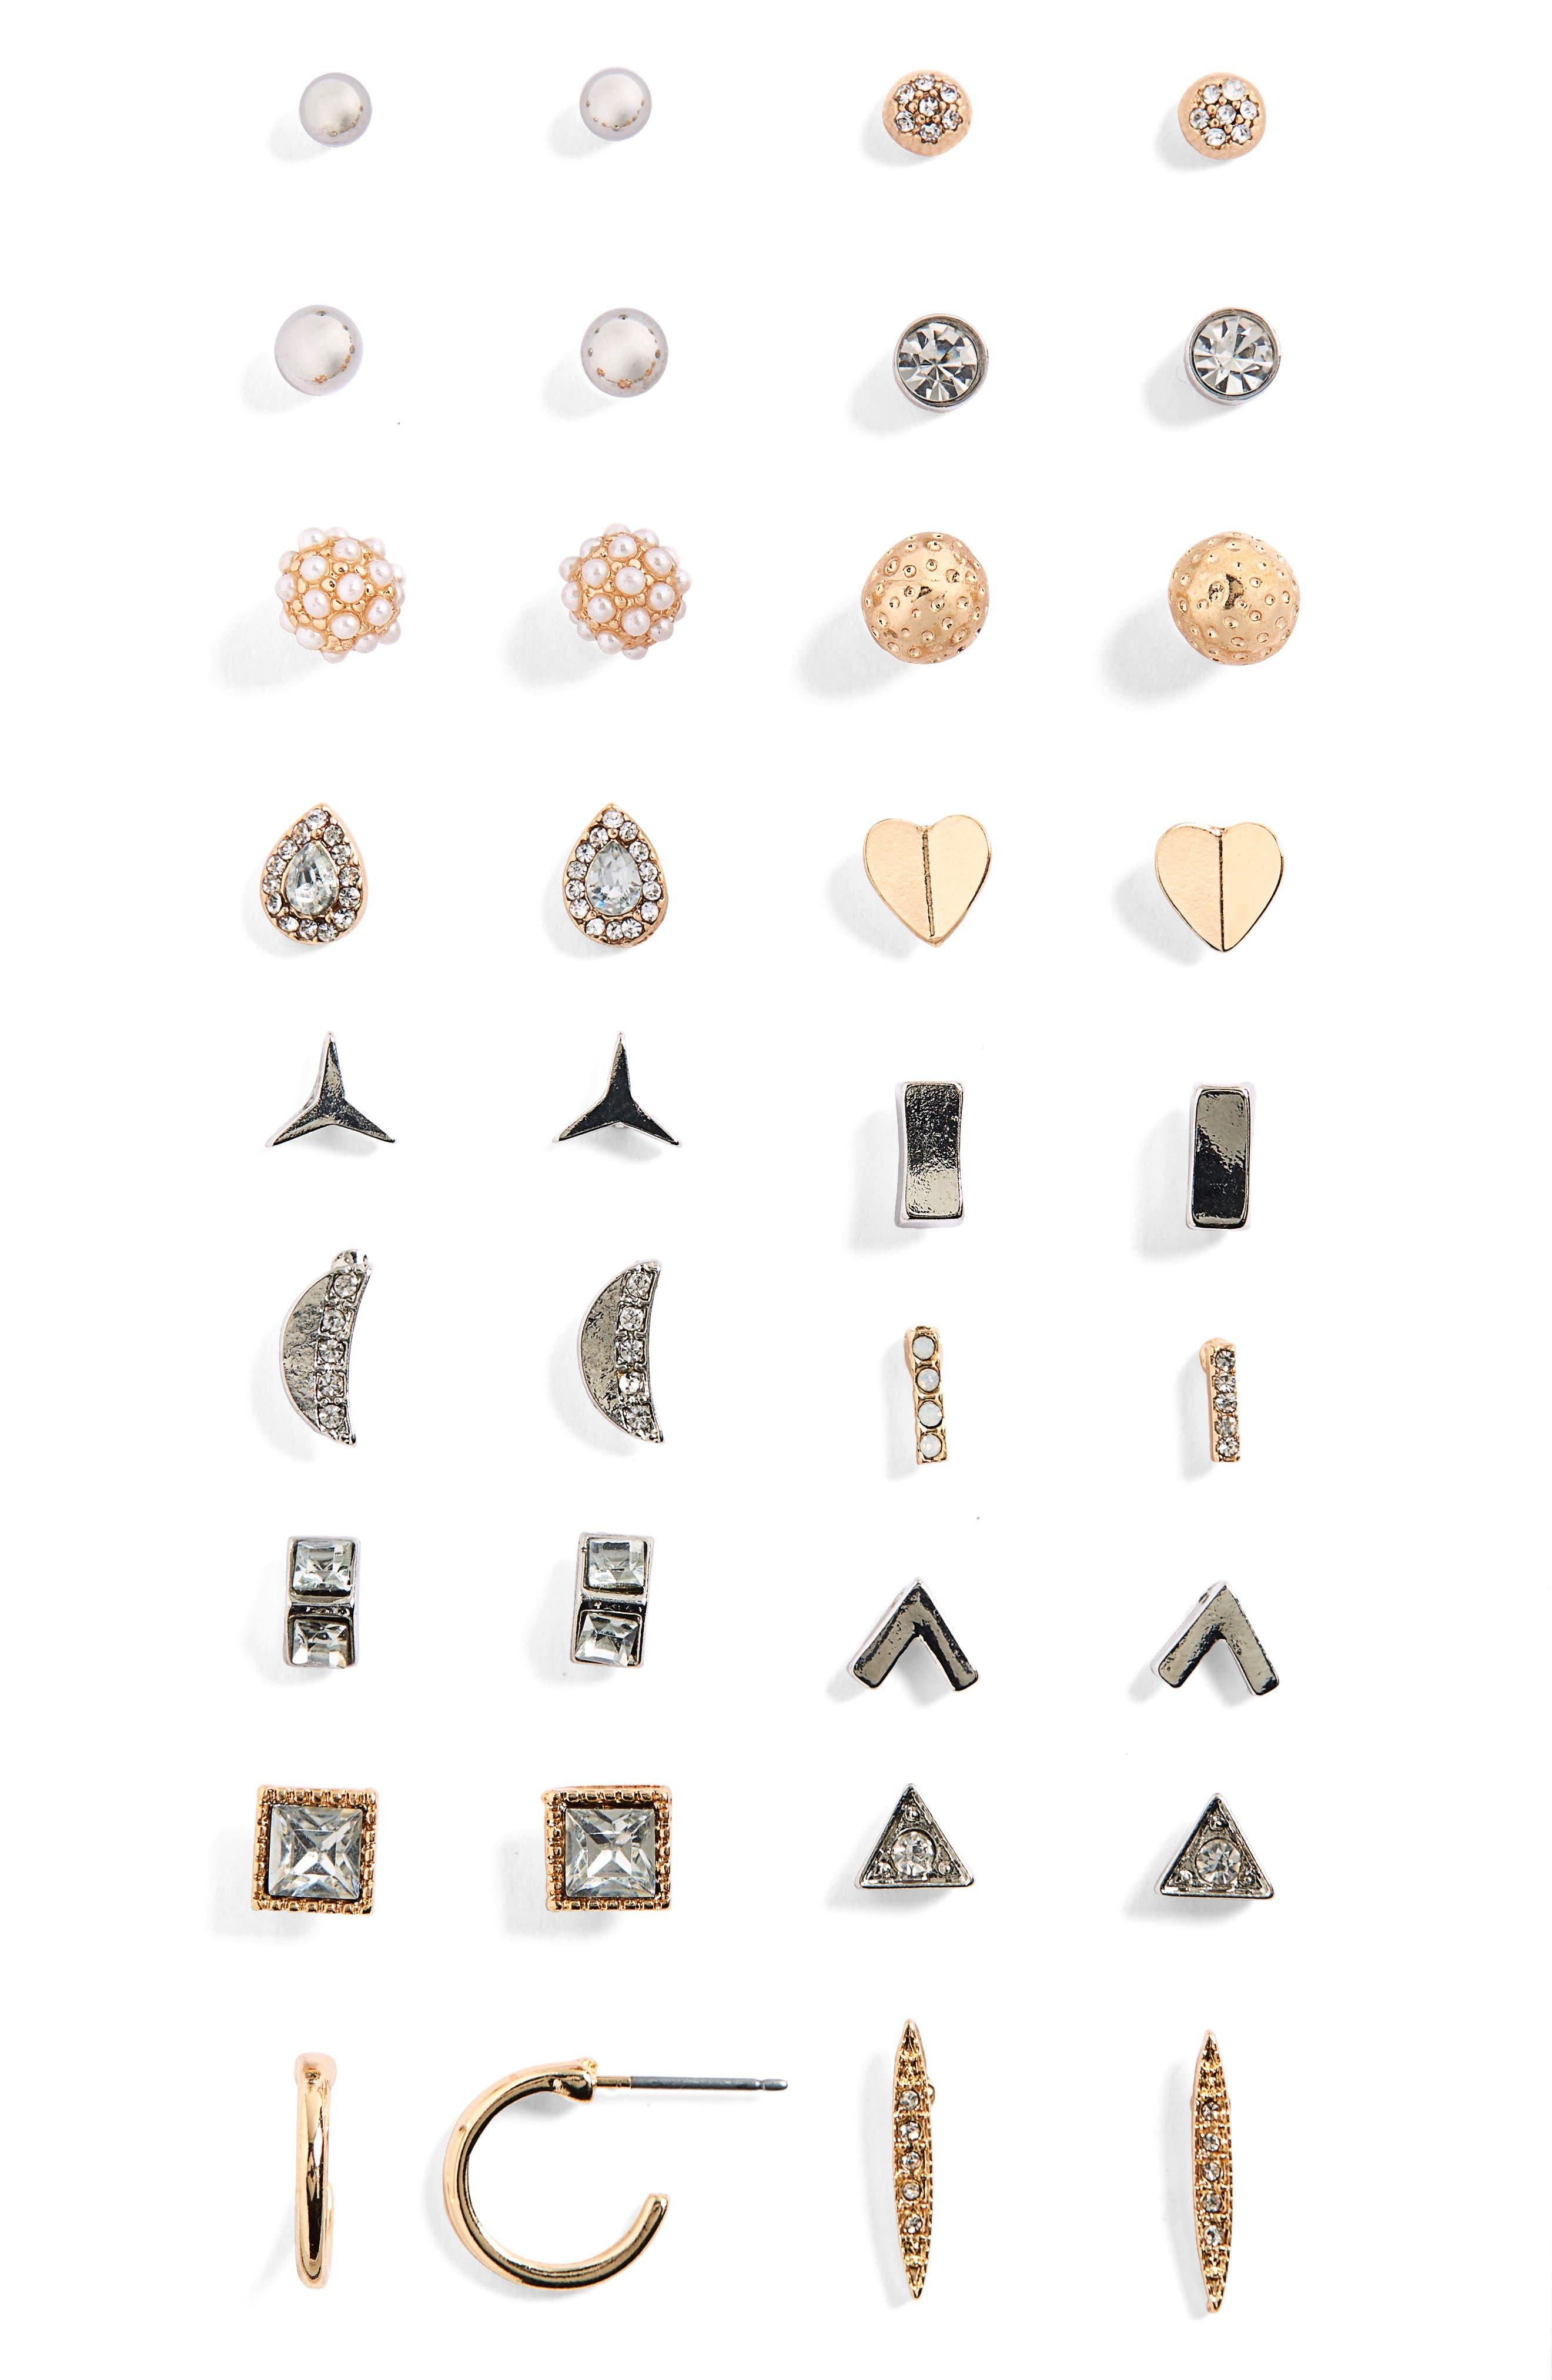 18-Pack Imitation Pearl & Crystal Stud Earrings,                             Main thumbnail 1, color,                             Gold/ Silver